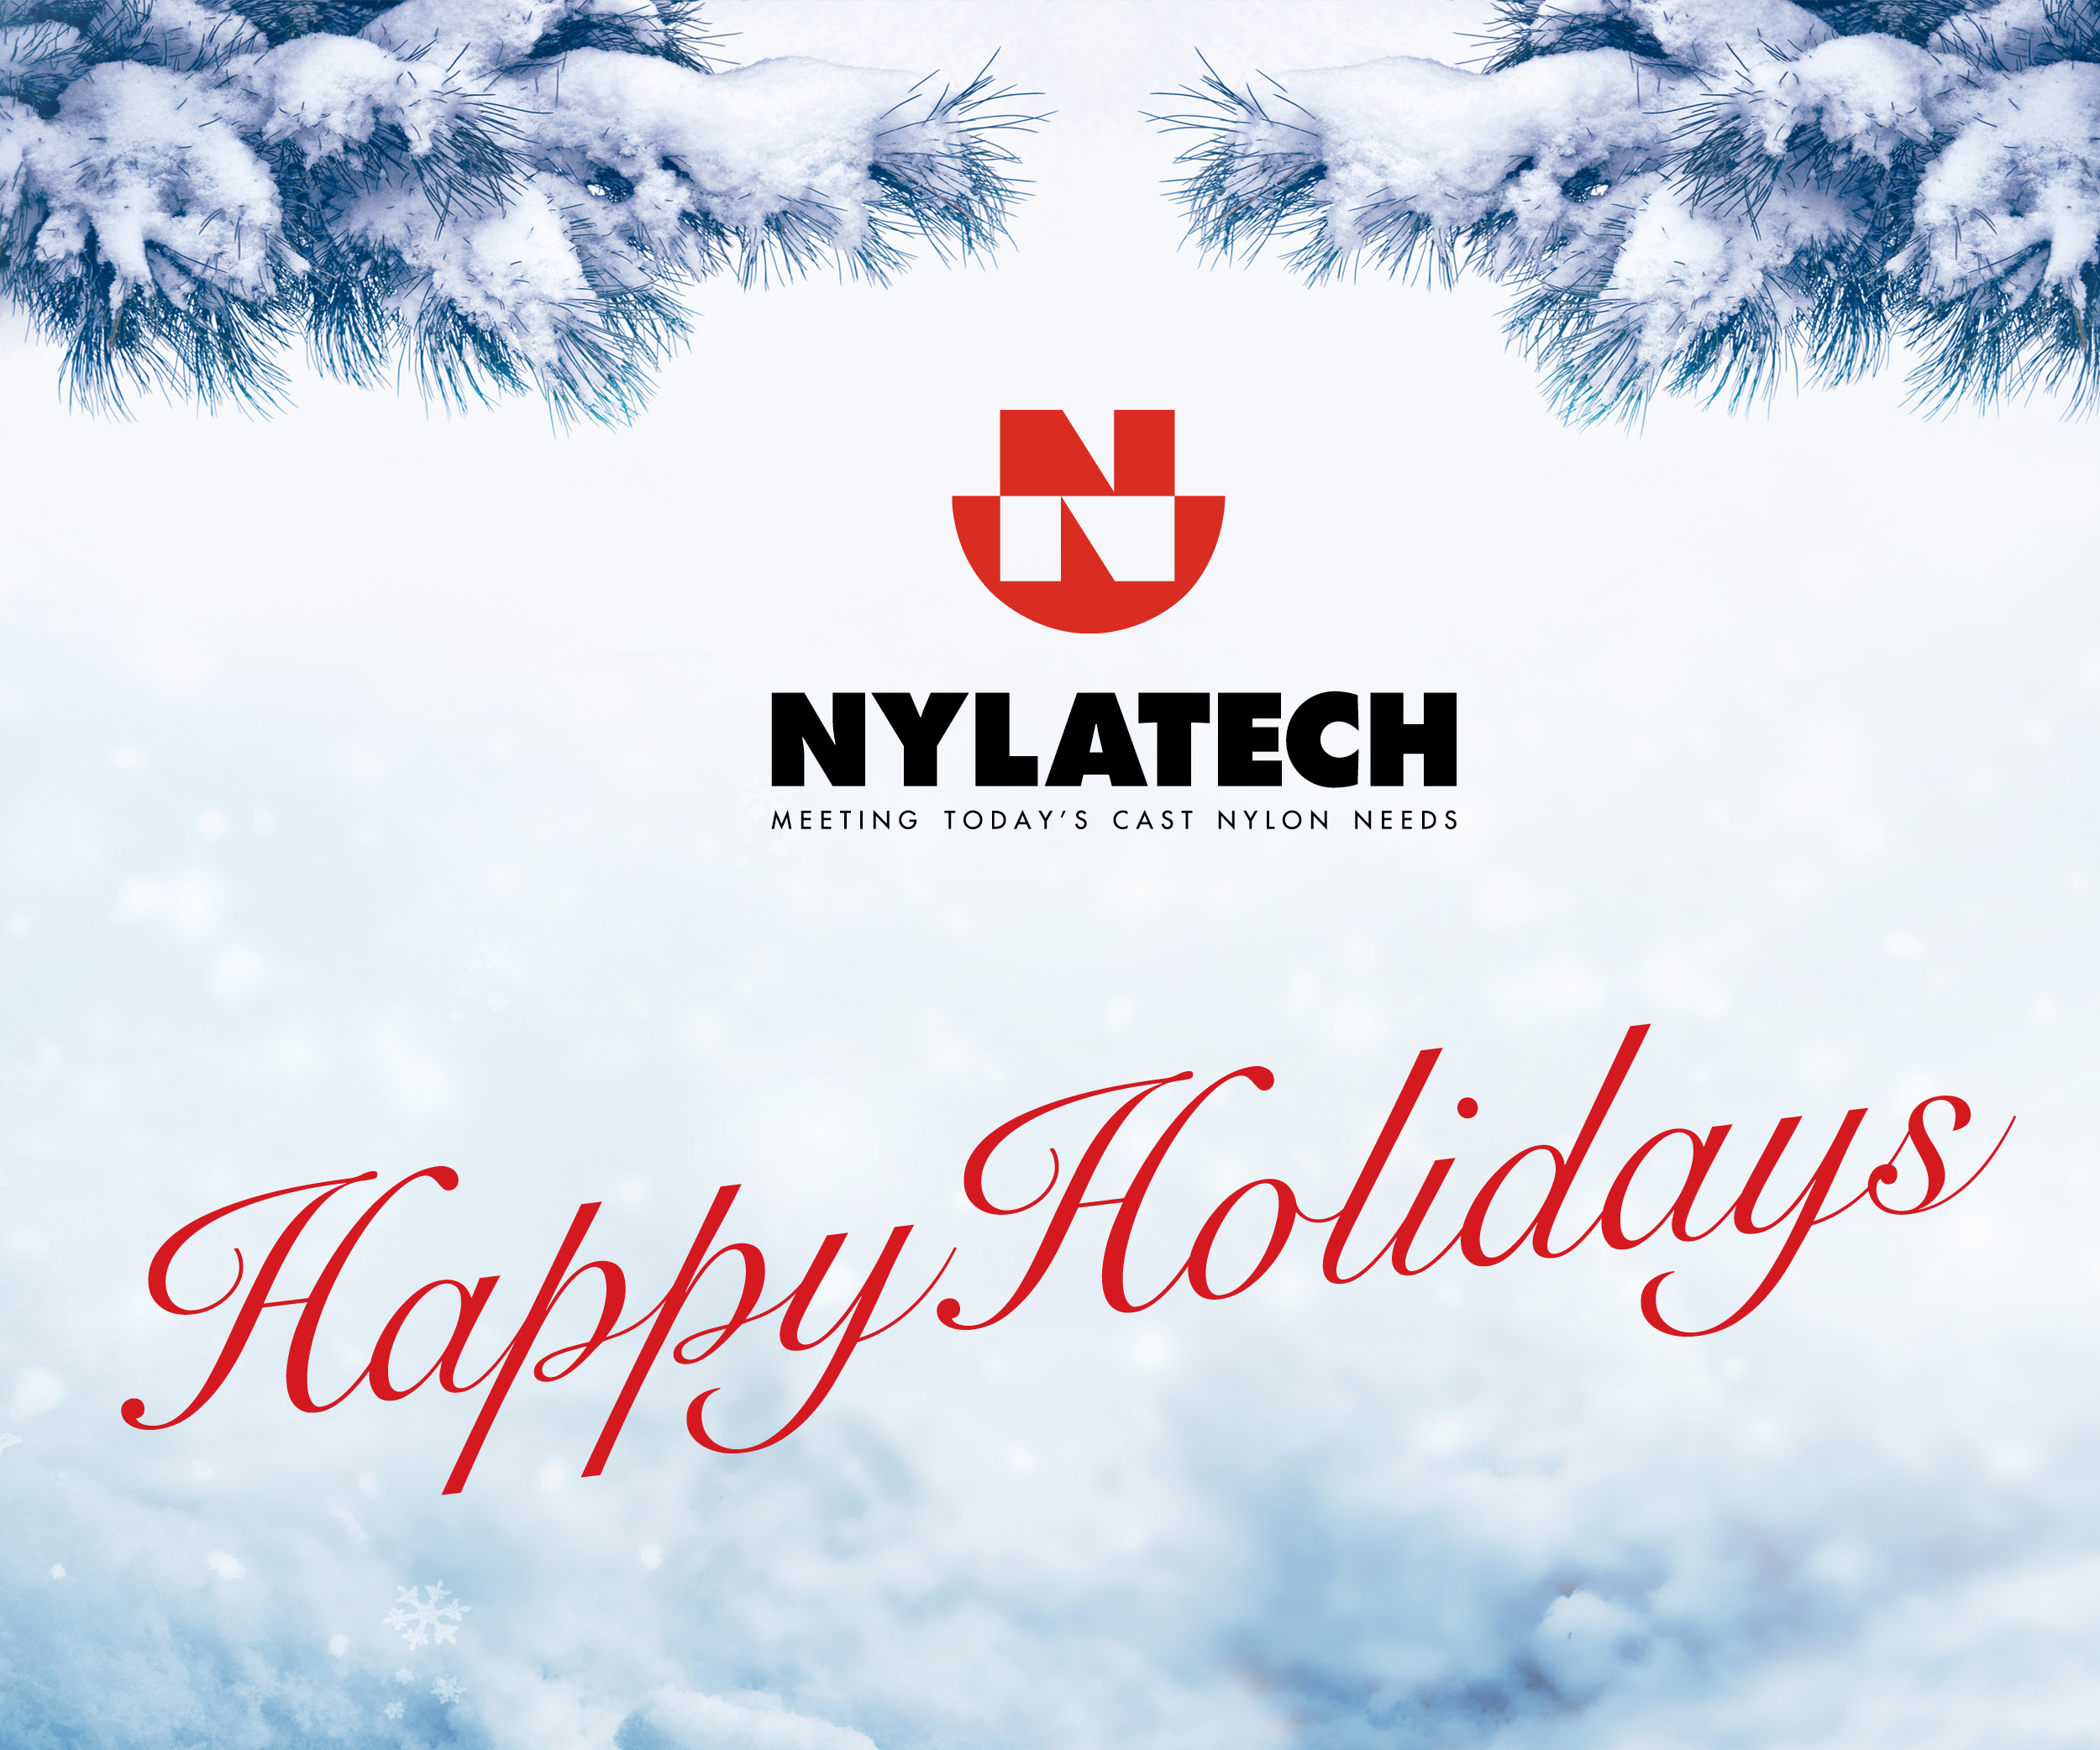 nylatech-happy-holiday-image-1200x1200